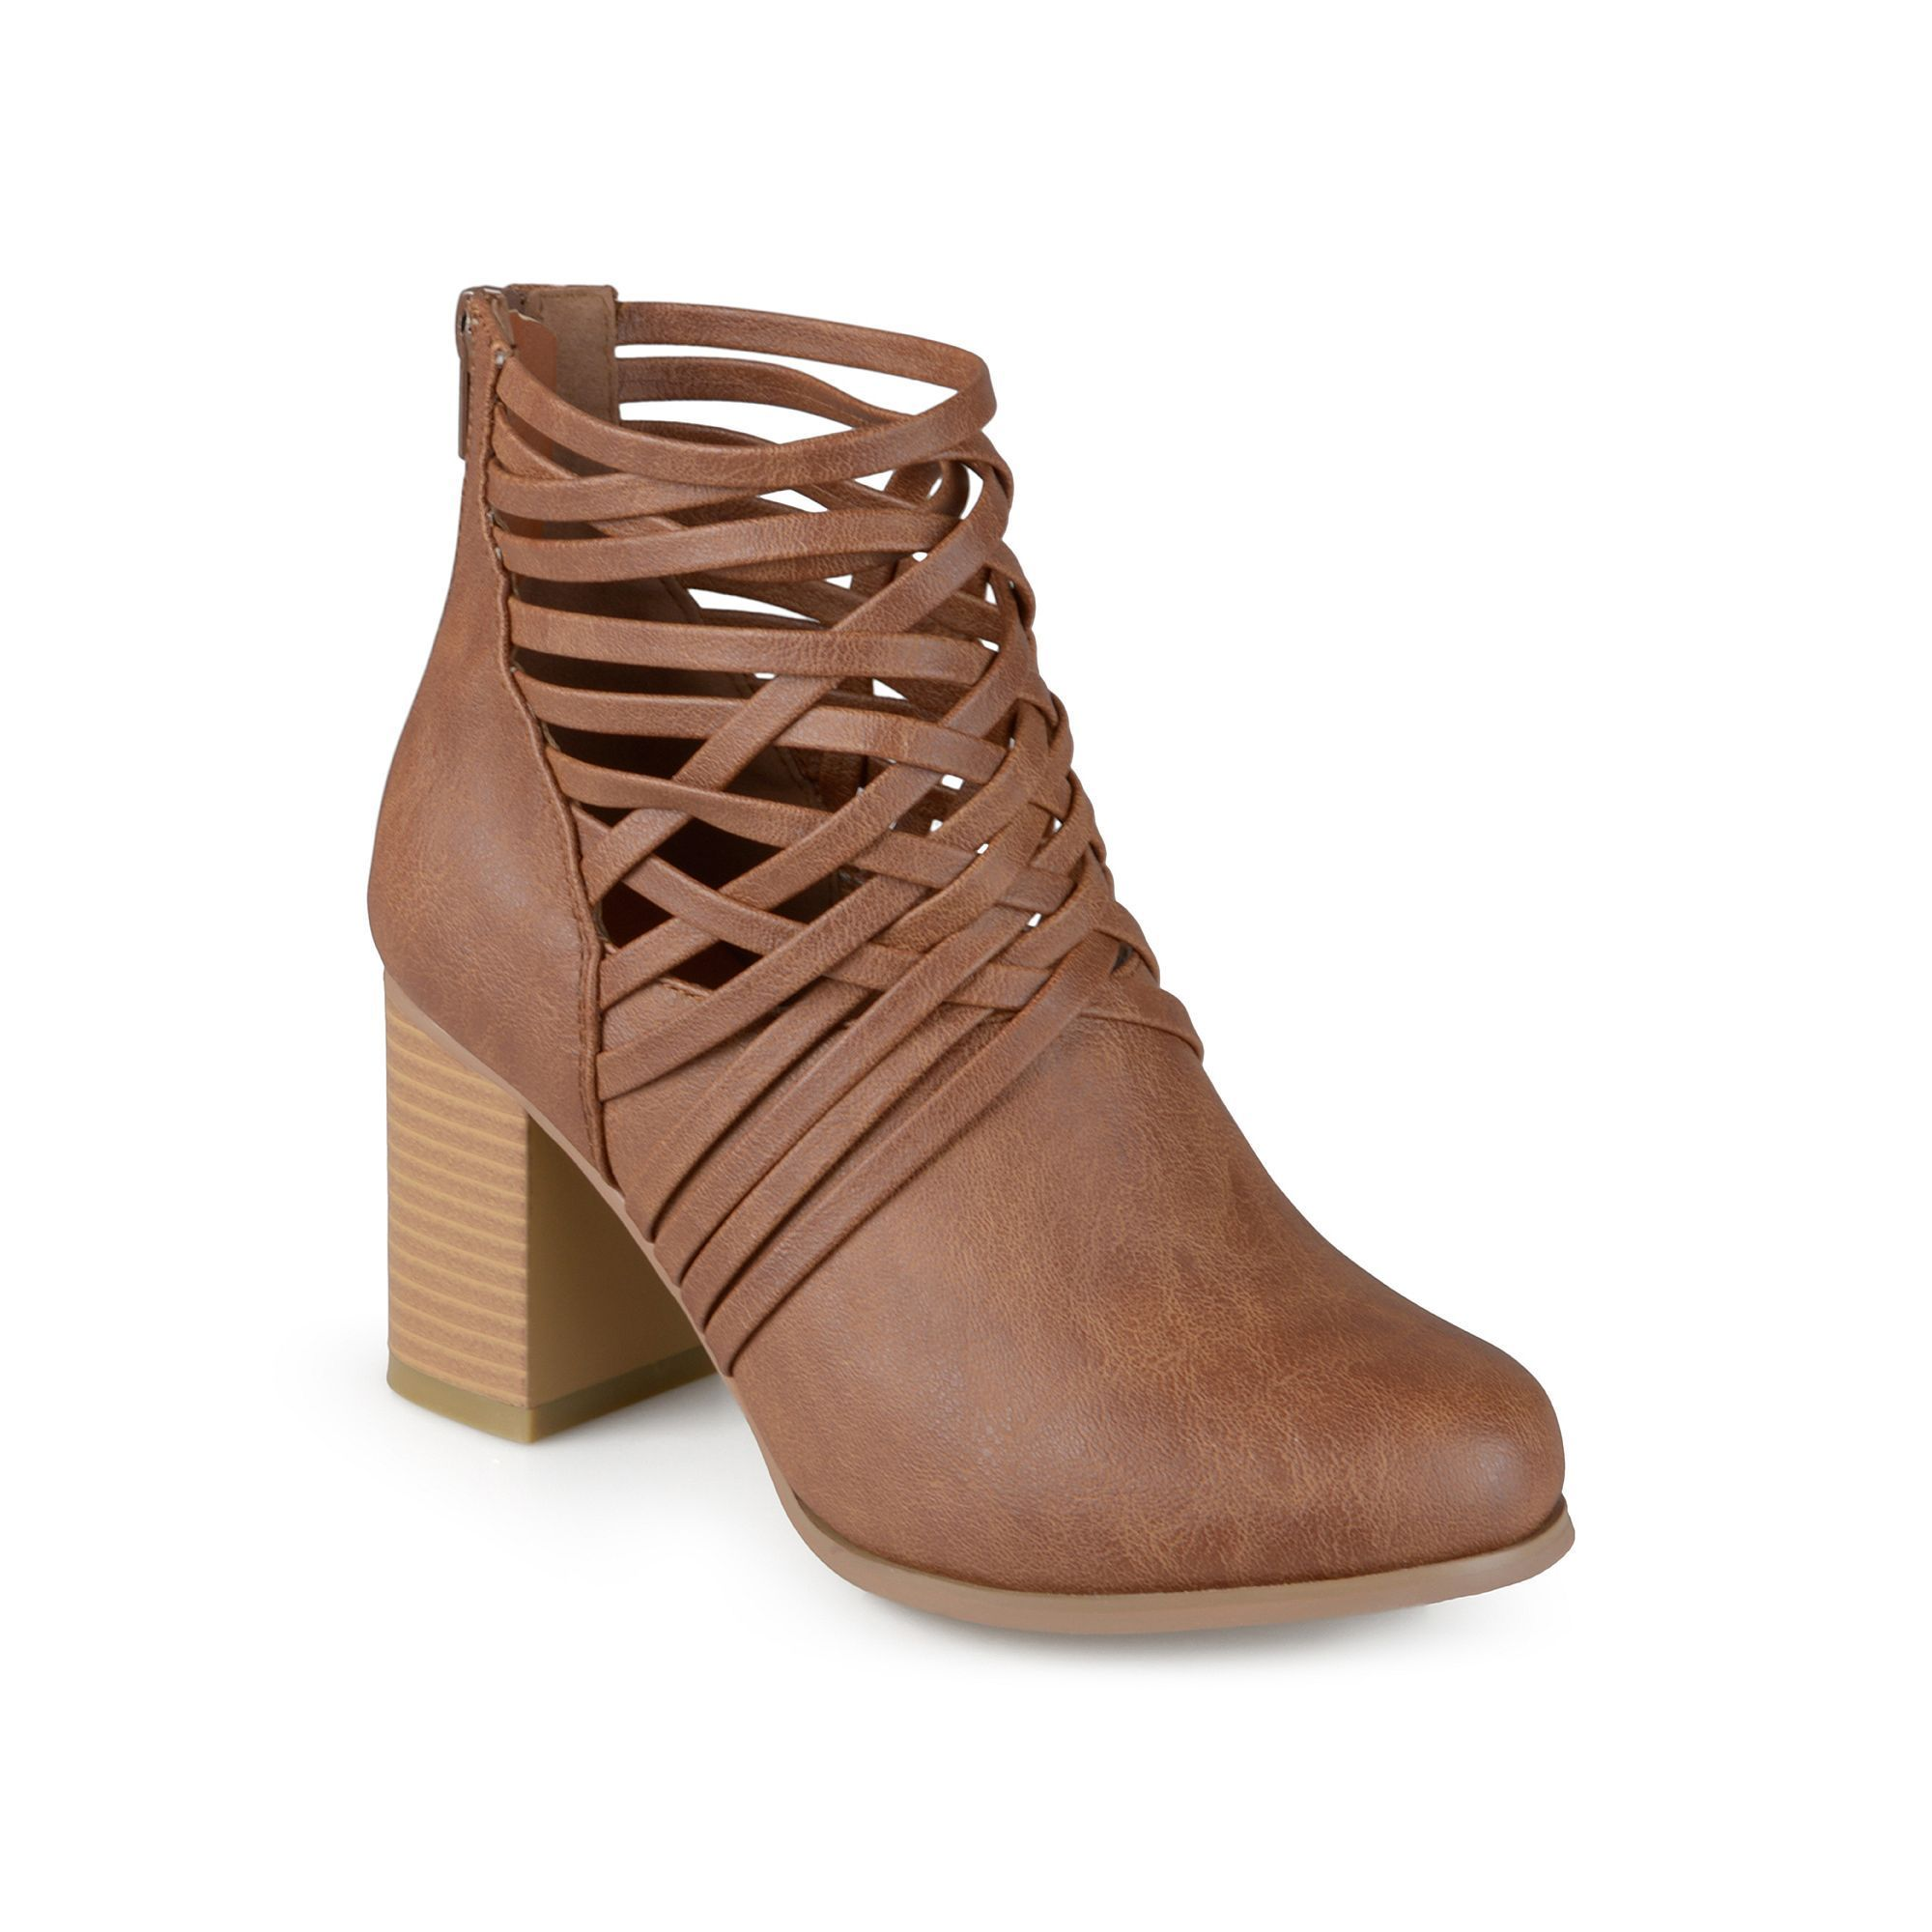 9c601afbff01 Journee Collection Alicia Women s Ankle Boots